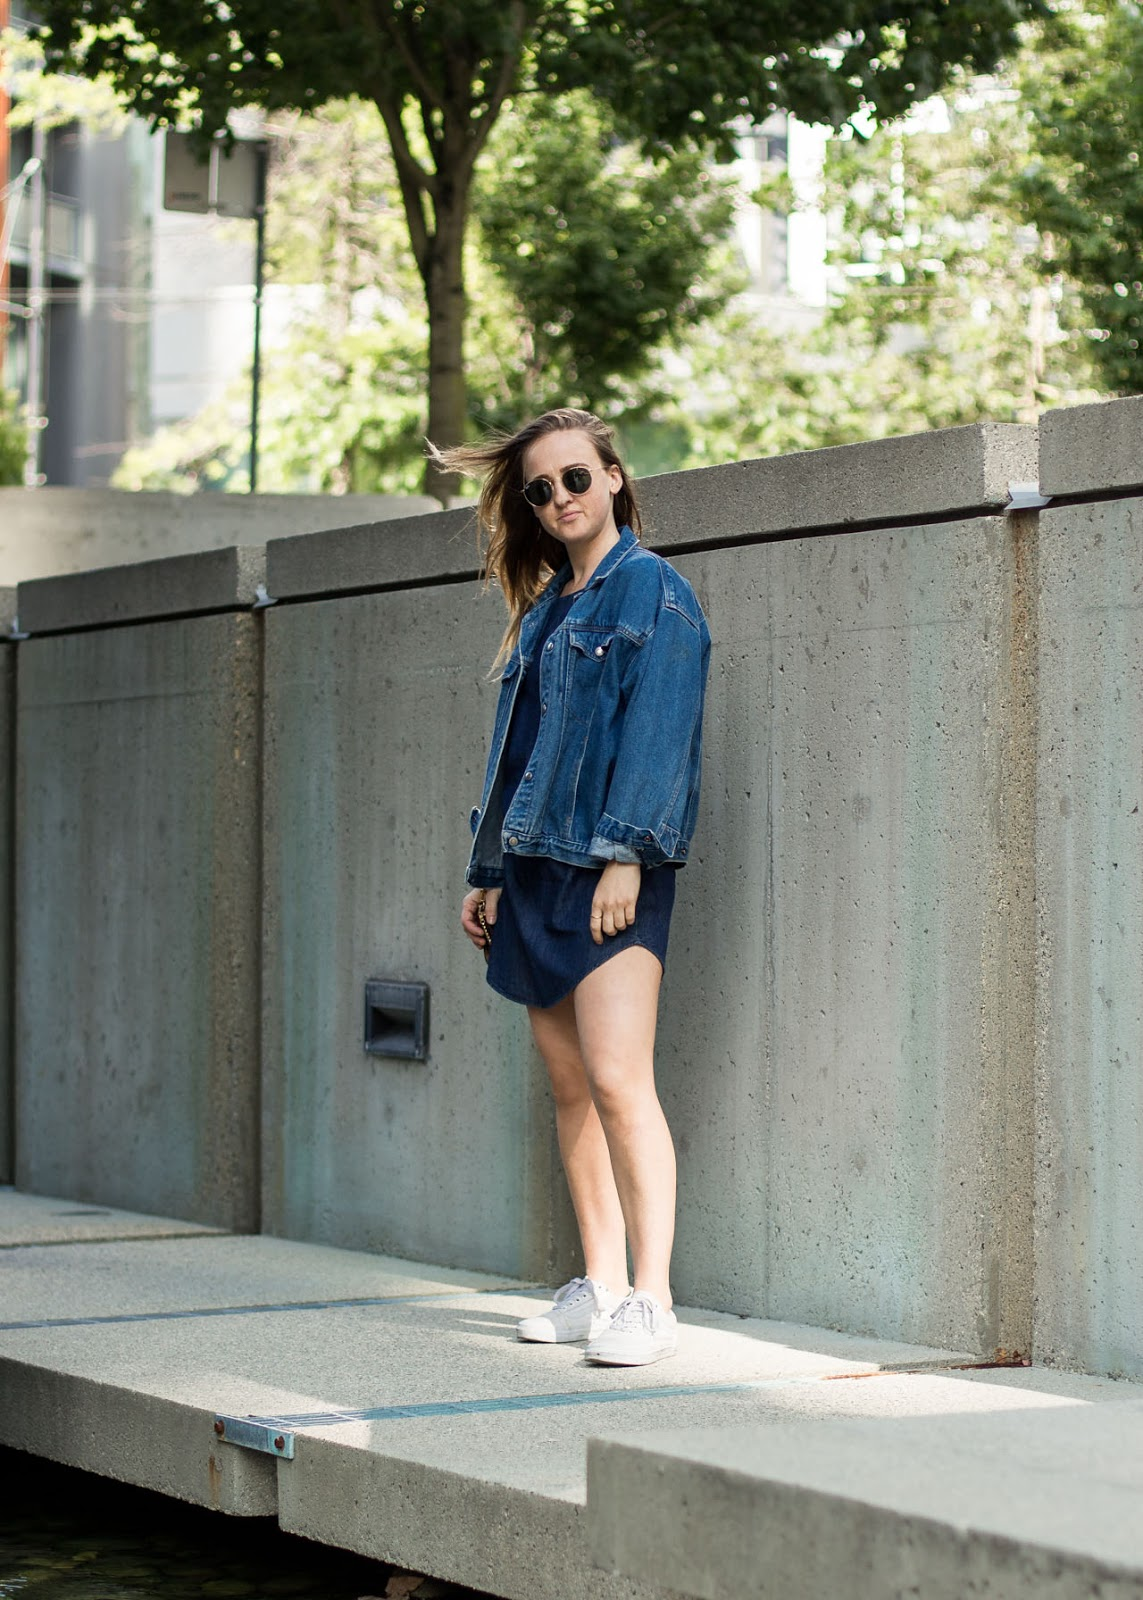 Denim on denim - Transitional styling - Vancouver Fashion Blogger - In My Dreams